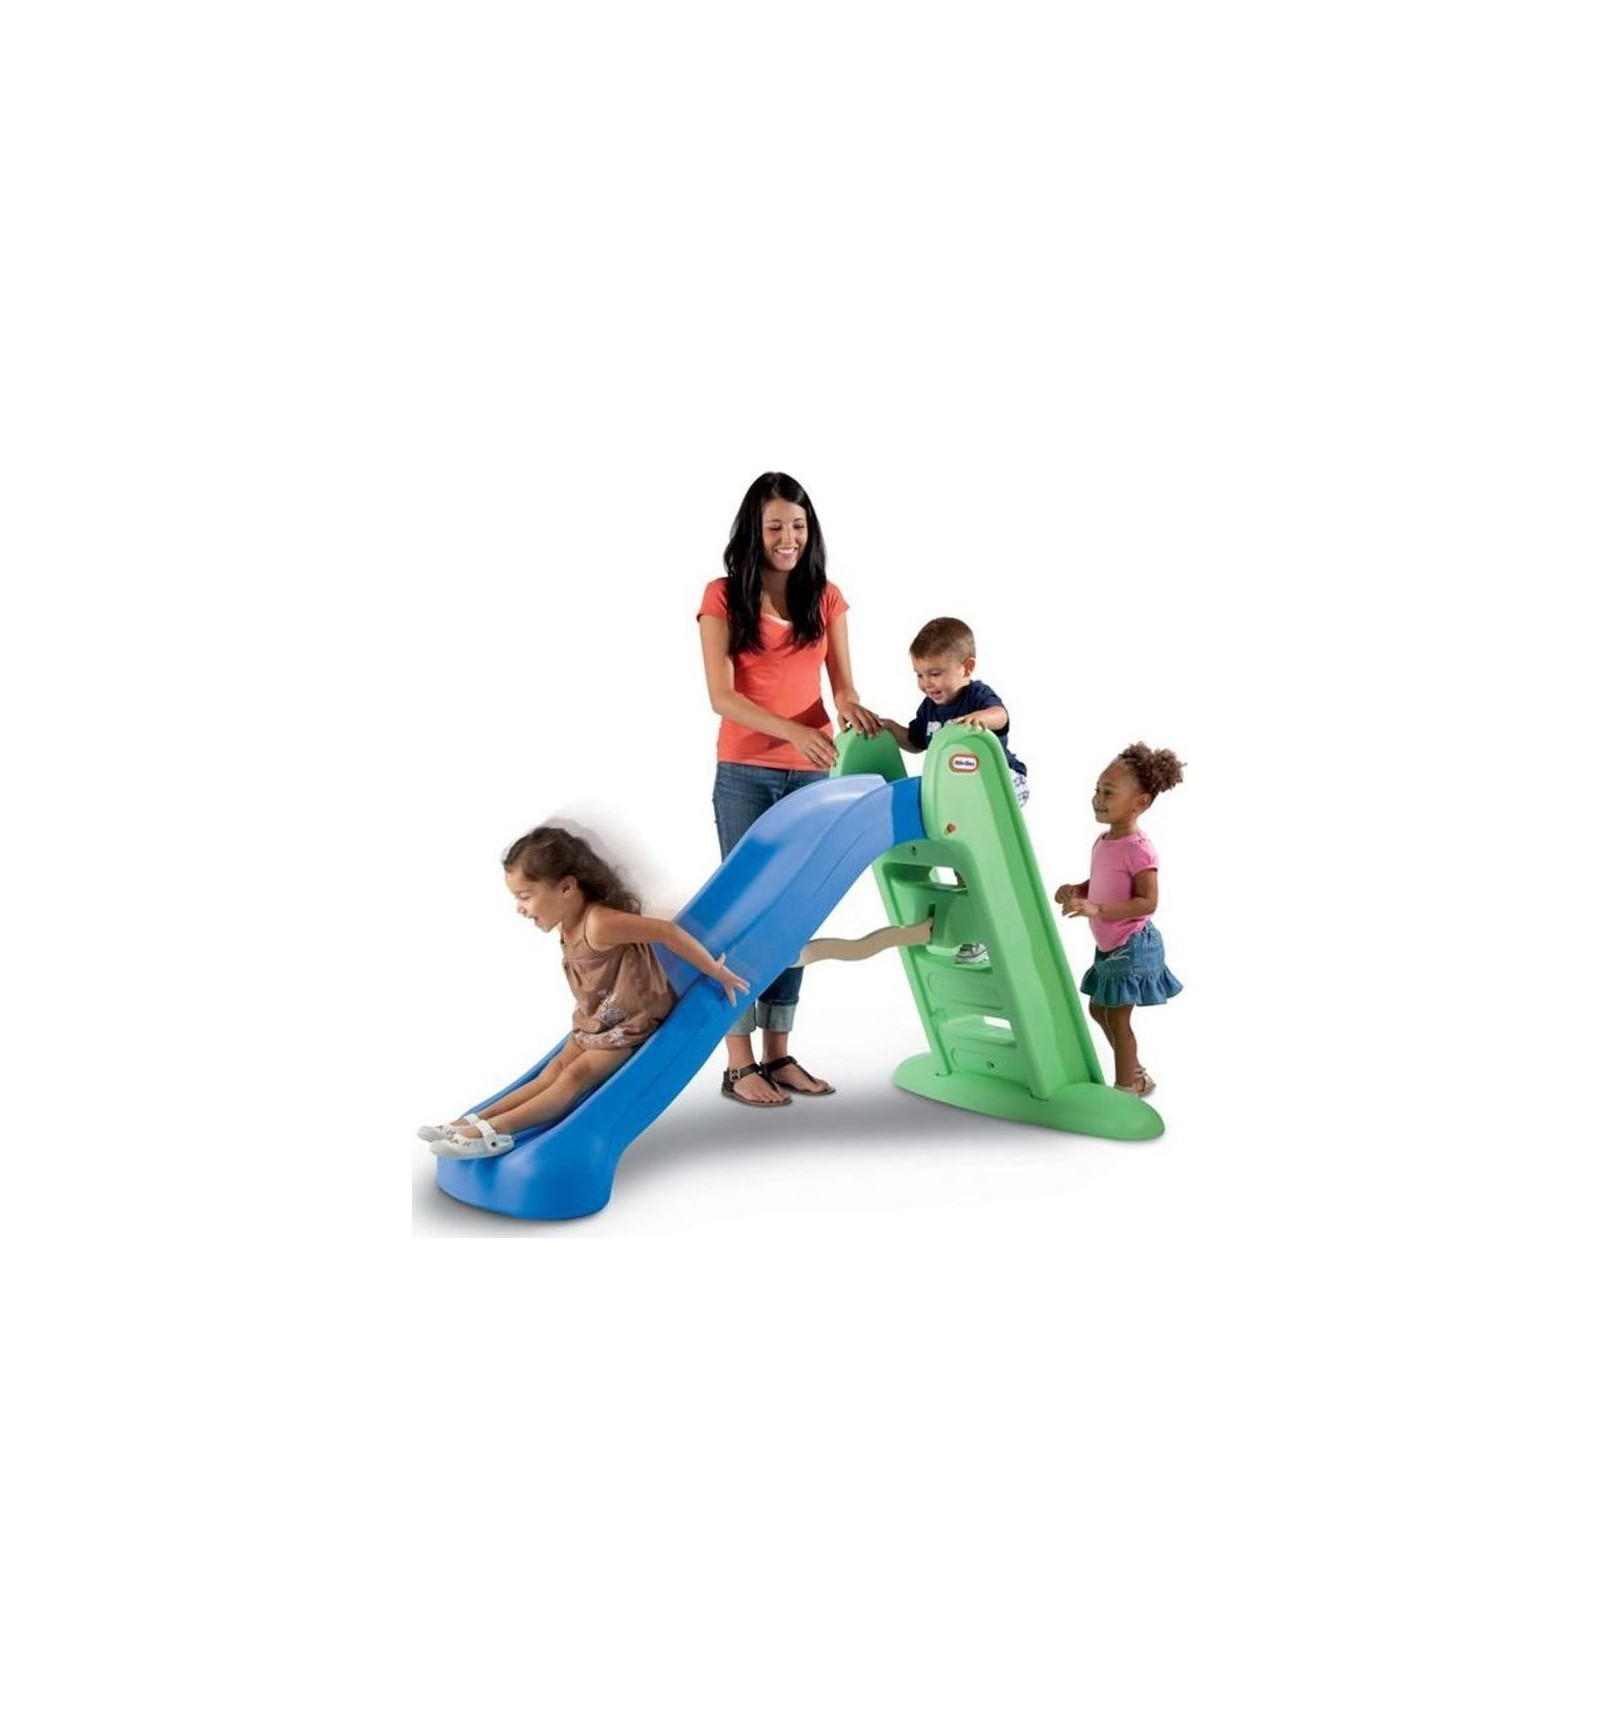 Little Tikes Easy Store Large Play Slide Mari Kali Babies